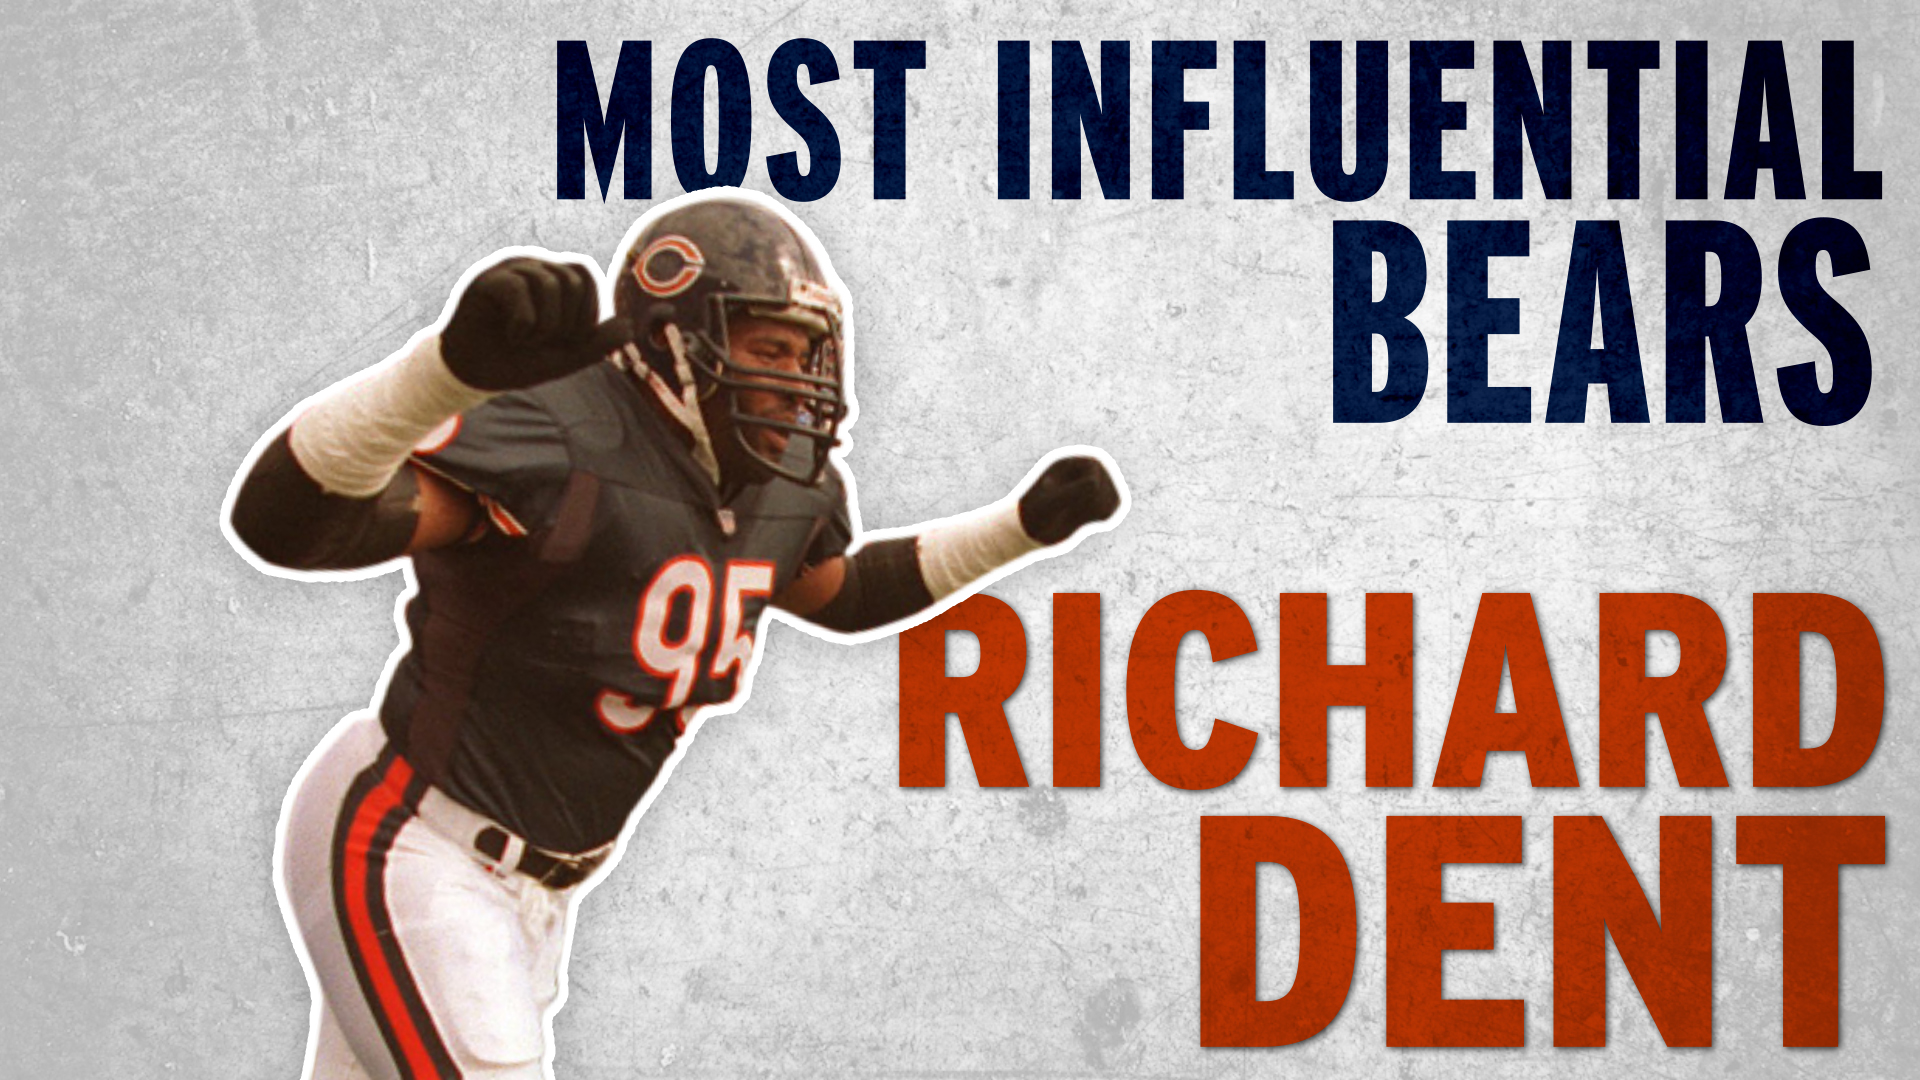 Most Influential Bears: Super Bowl MVP, Richard Dent, Chicago